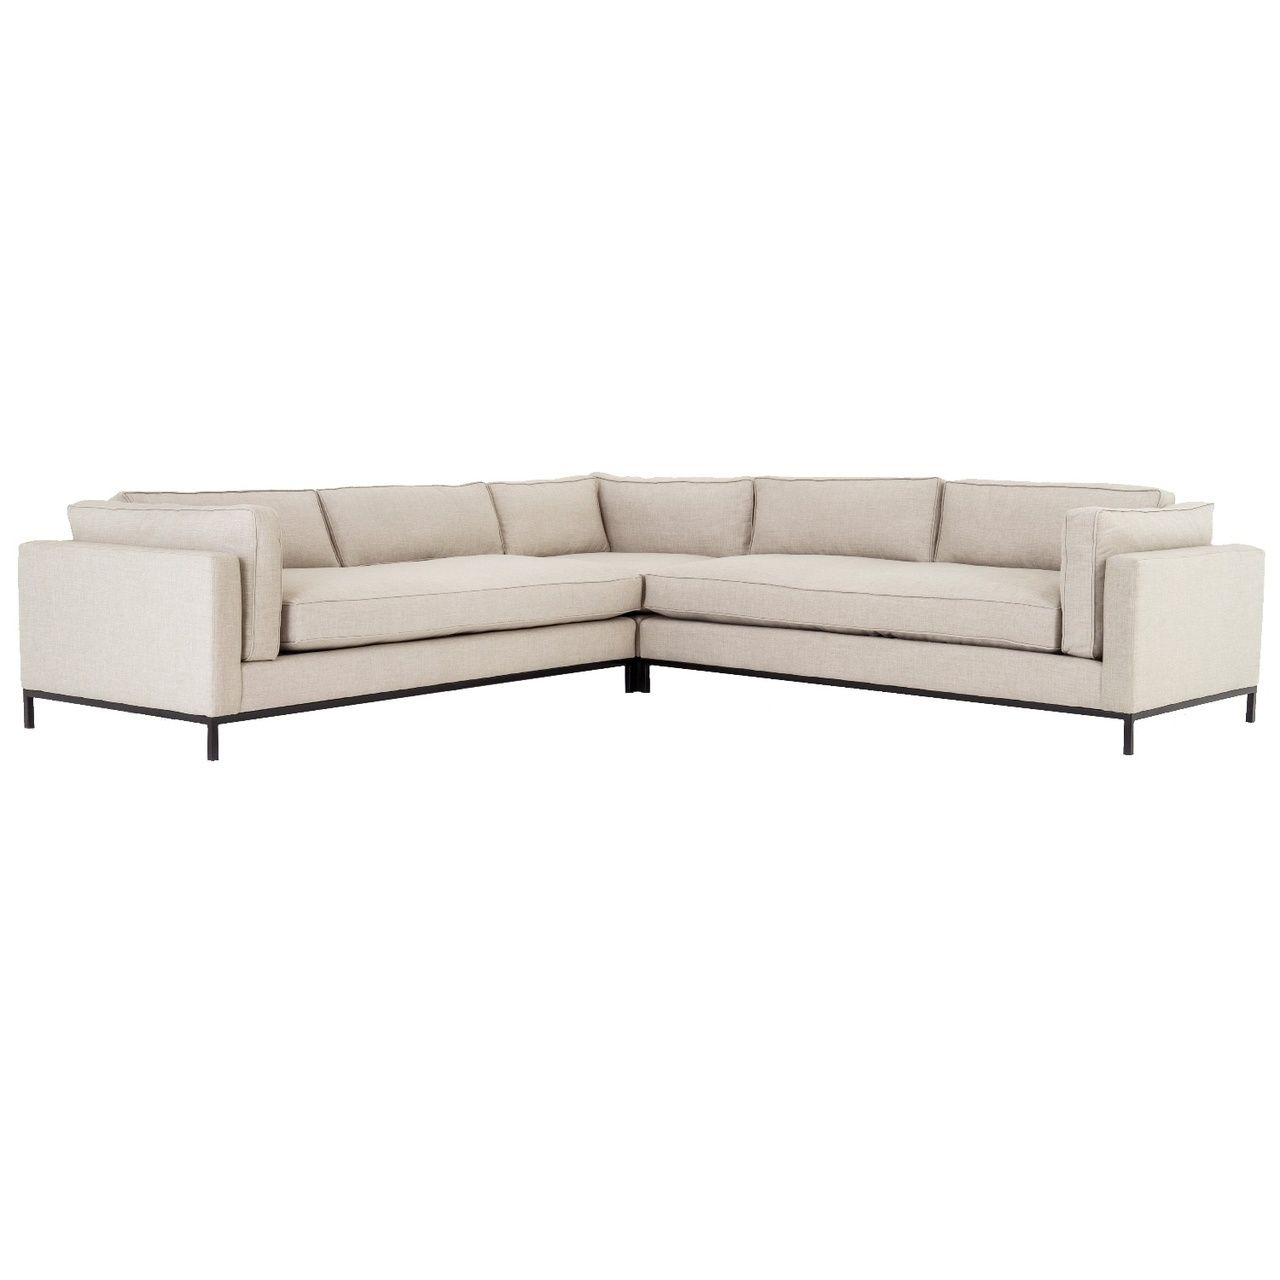 Grammercy Sand Fabric 3 Piece Corner Sectional Sofa In 2020